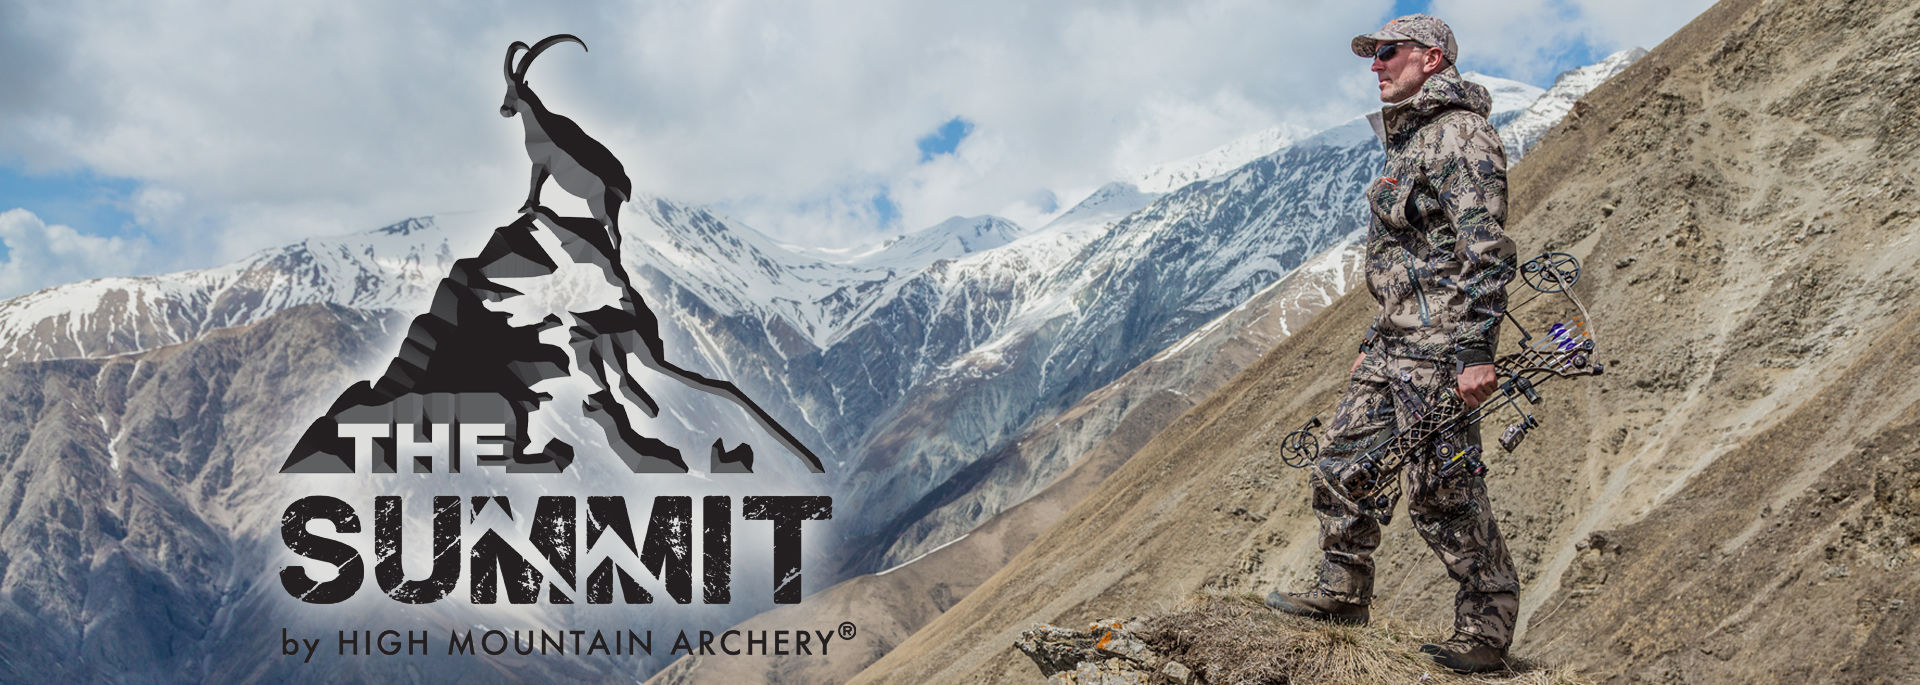 #The Summit by High Mountain Archery channel